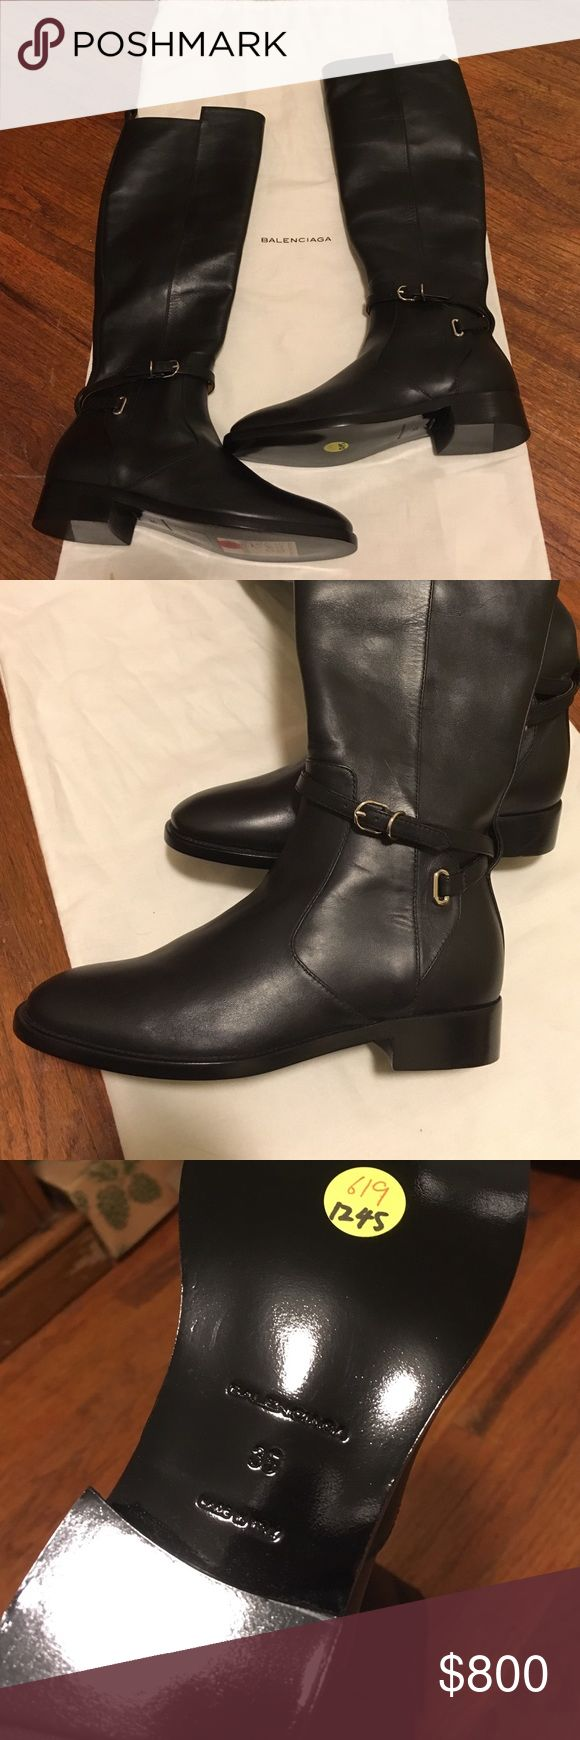 Balenciaga Papier buckled knee high boots This is brand new. Never been worn. Just tried on. With dust bag. No damage. Normal scratches due to storage. 100% authentic. From balenciaga store. Retail 1135 plus tax :) FINAL SALE! No returns! Balenciaga Shoes Over the Knee Boots